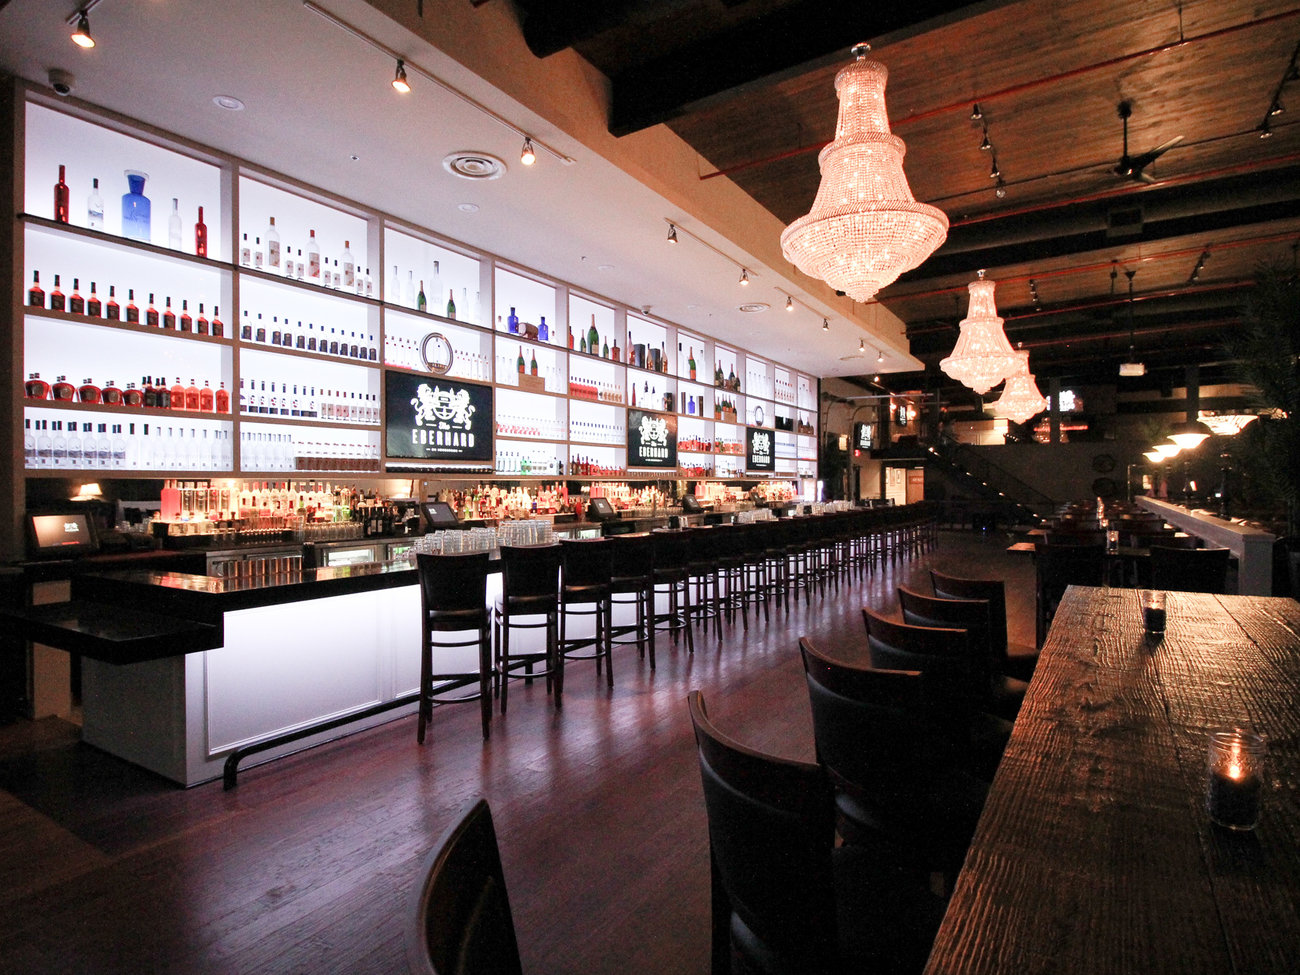 The Eberhard Bar in Dallas